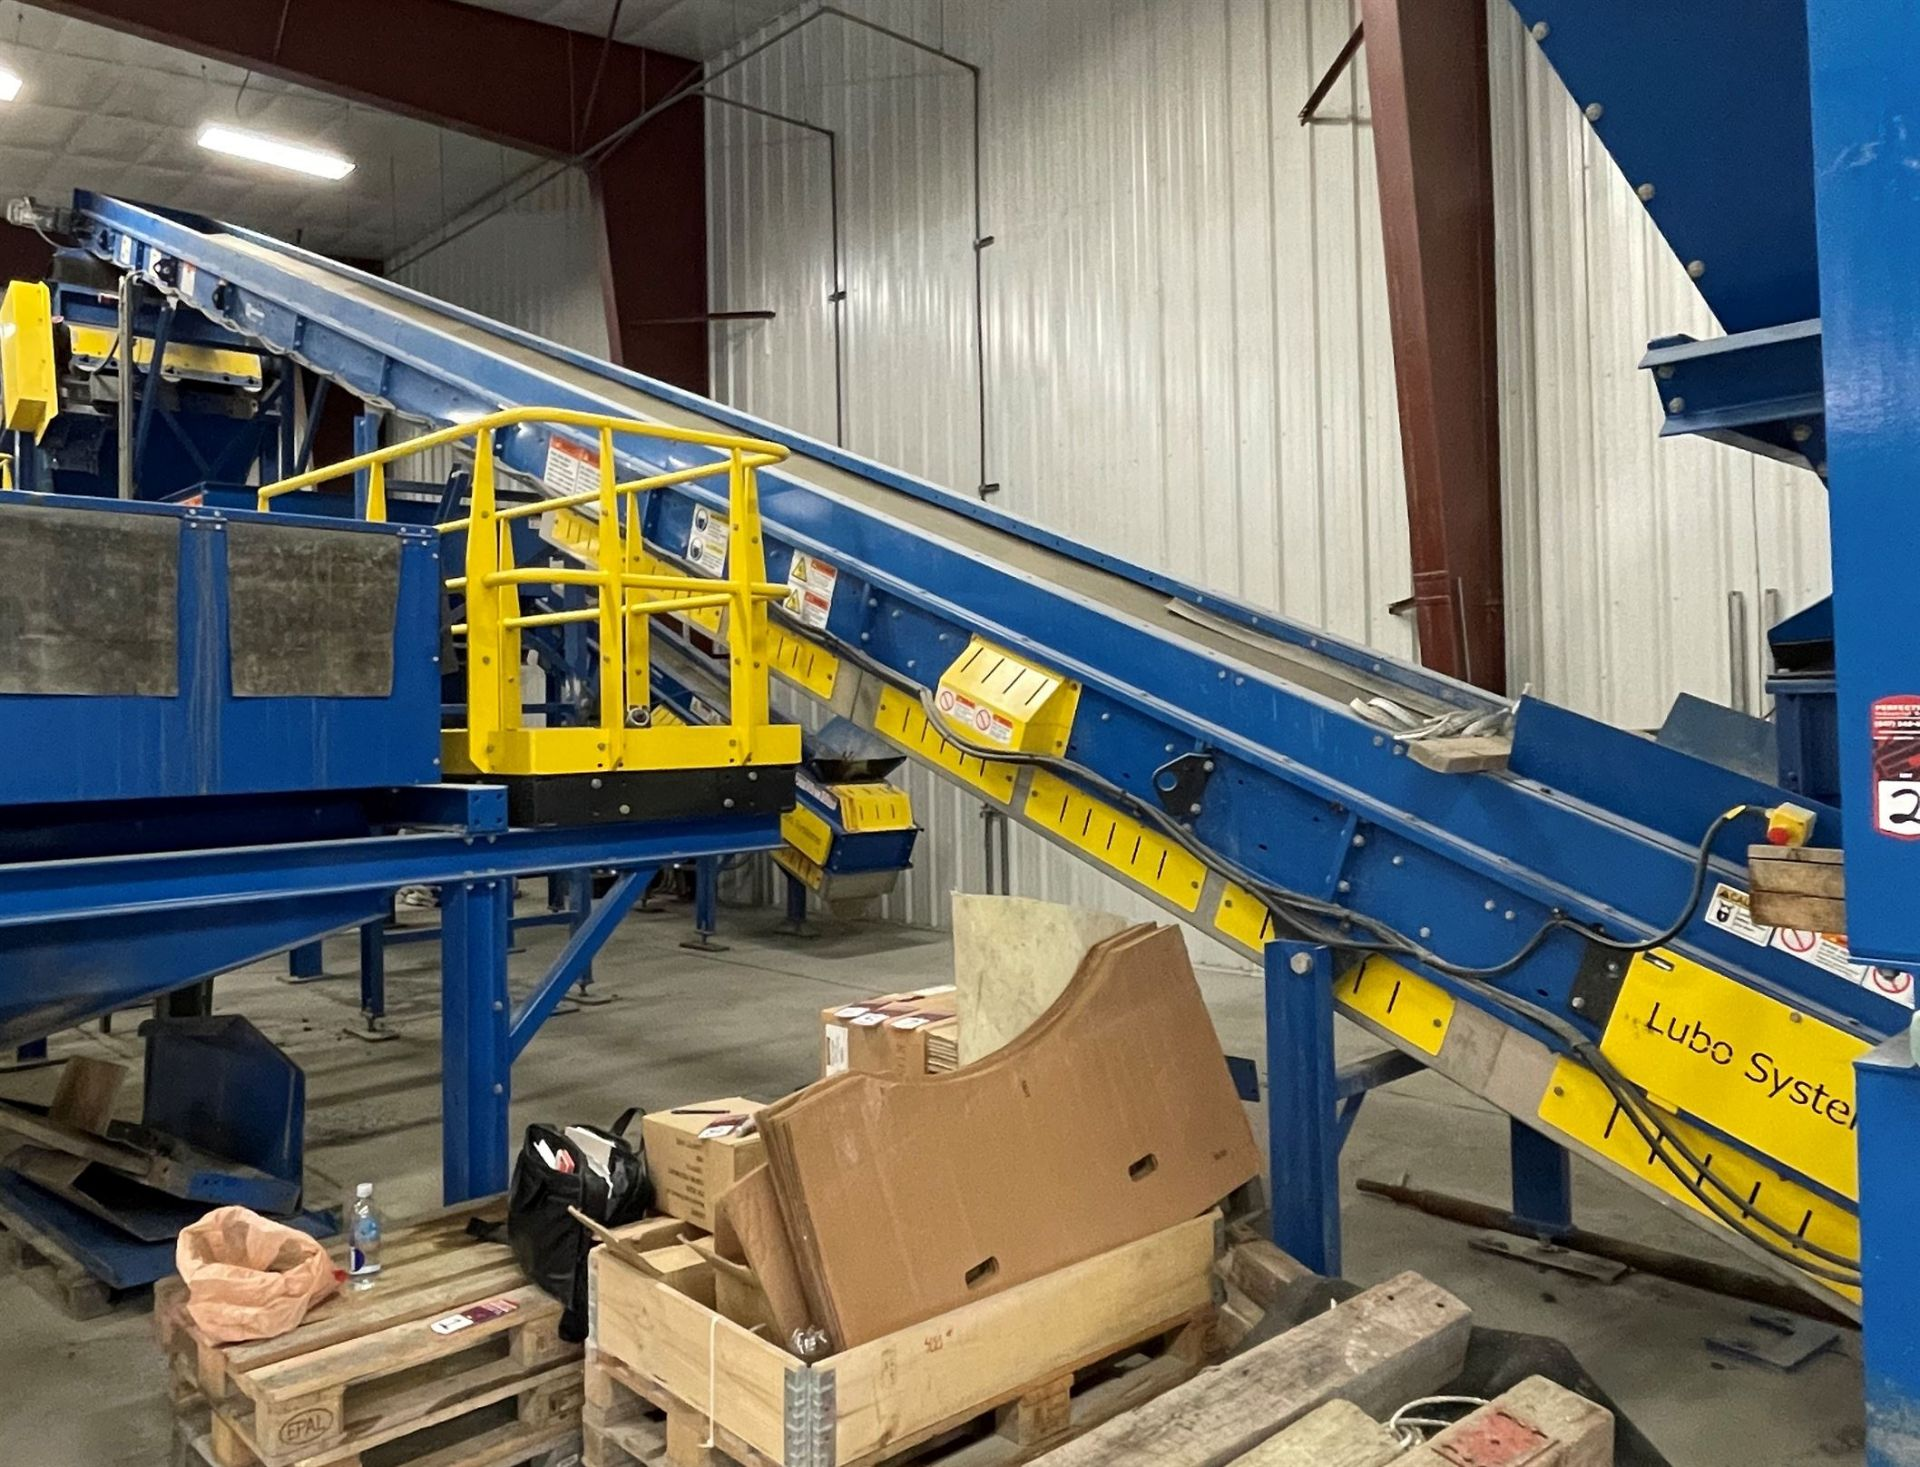 2015 LUBO SYSTEMS TBL 1000x15000 Inclined Belt Conveyor, s/n 800108-0040, 1000mm x 5000mm, SEW 3.7 - Image 5 of 5